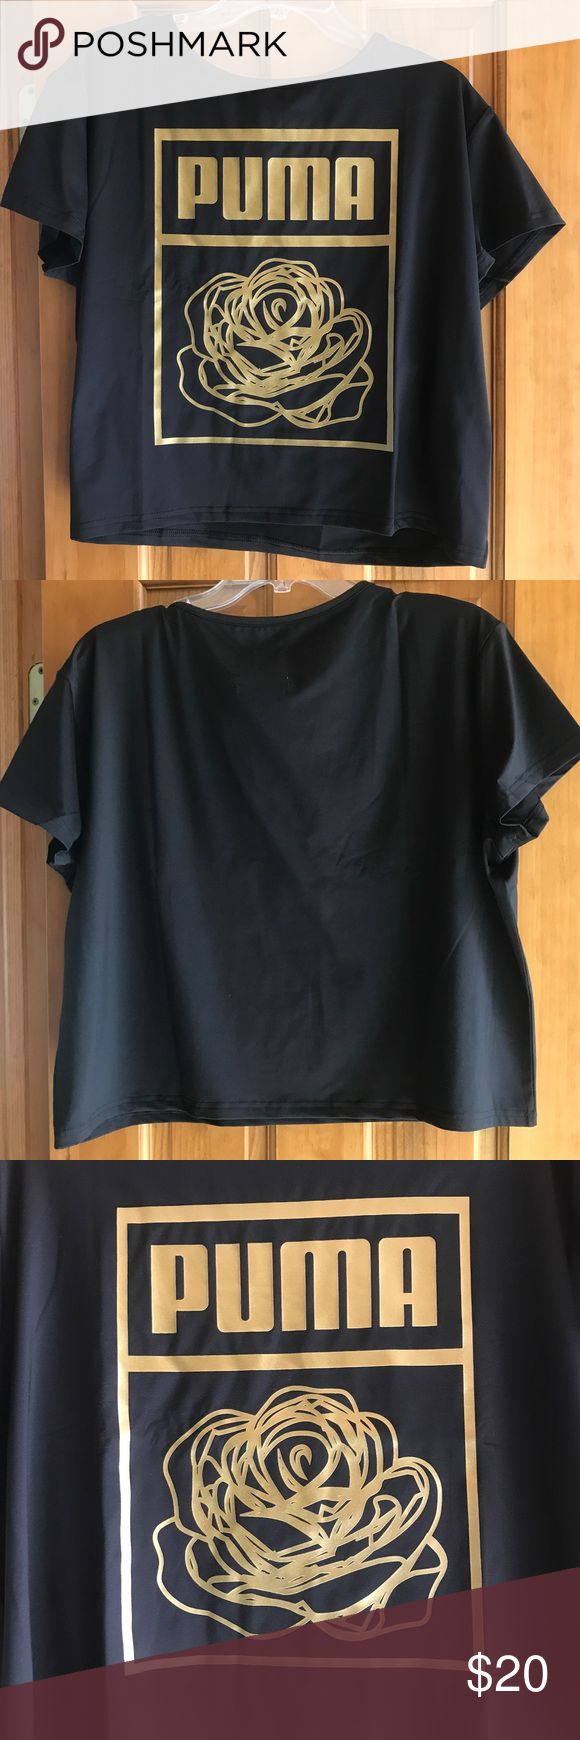 Puma Shirt This is more of a cropped shirt. Size large. Puma Tops Tees - Short Sleeve